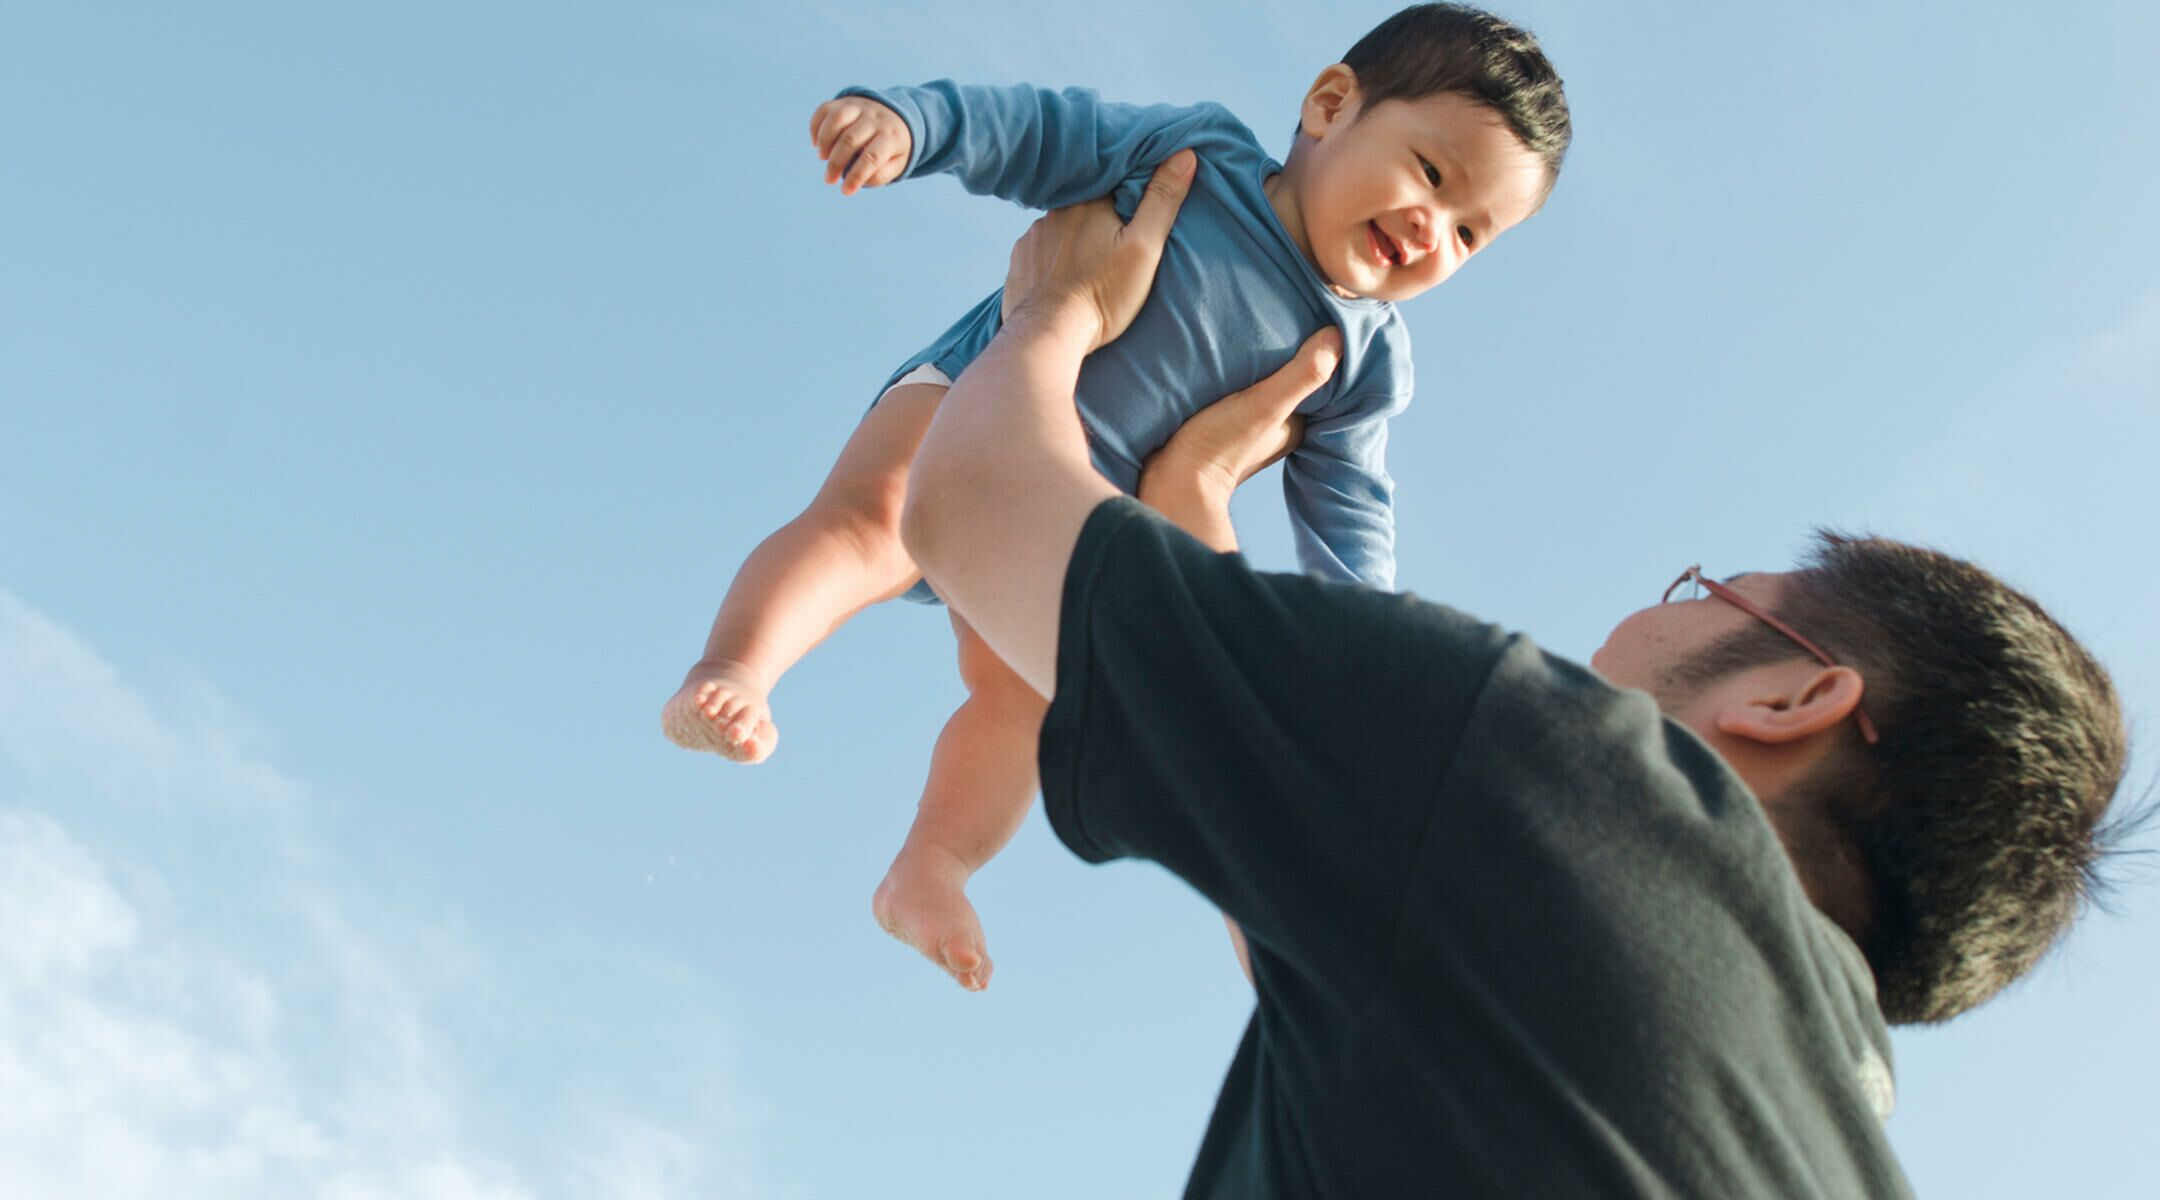 7 Ways for a New Dad to Bond WithBaby